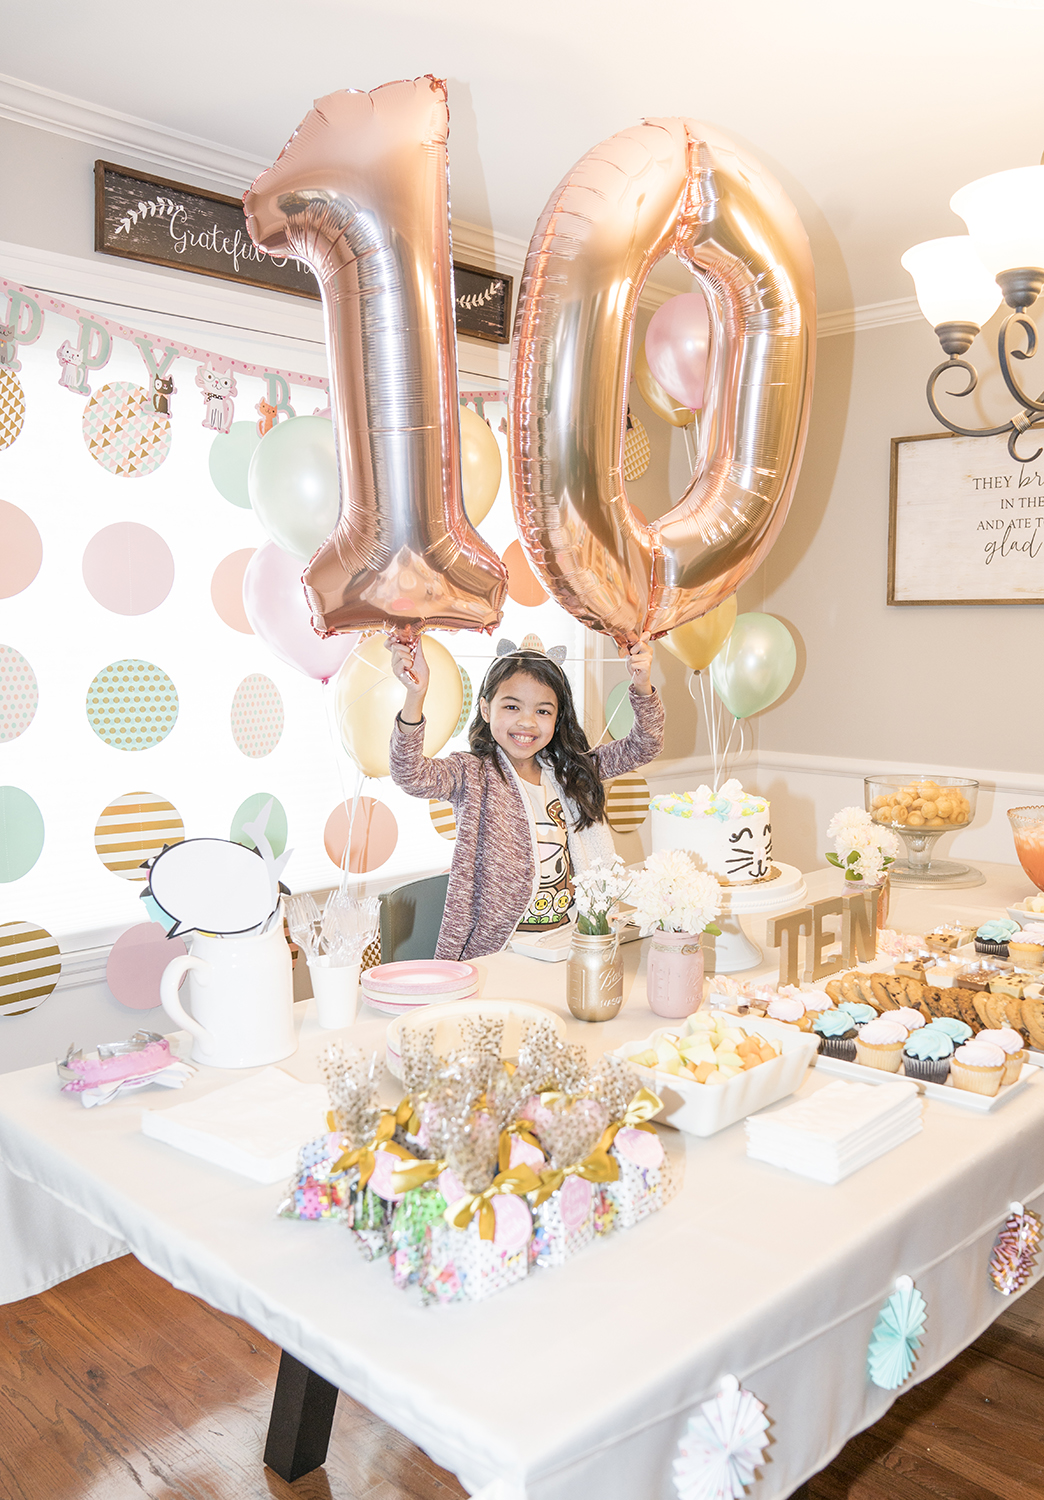 Girls 10th Birthday Party Ideas Oh The Big Ten T E N You Know Two Digit Age That Most Parents Dread To Admit Their Baby Is No Longer A